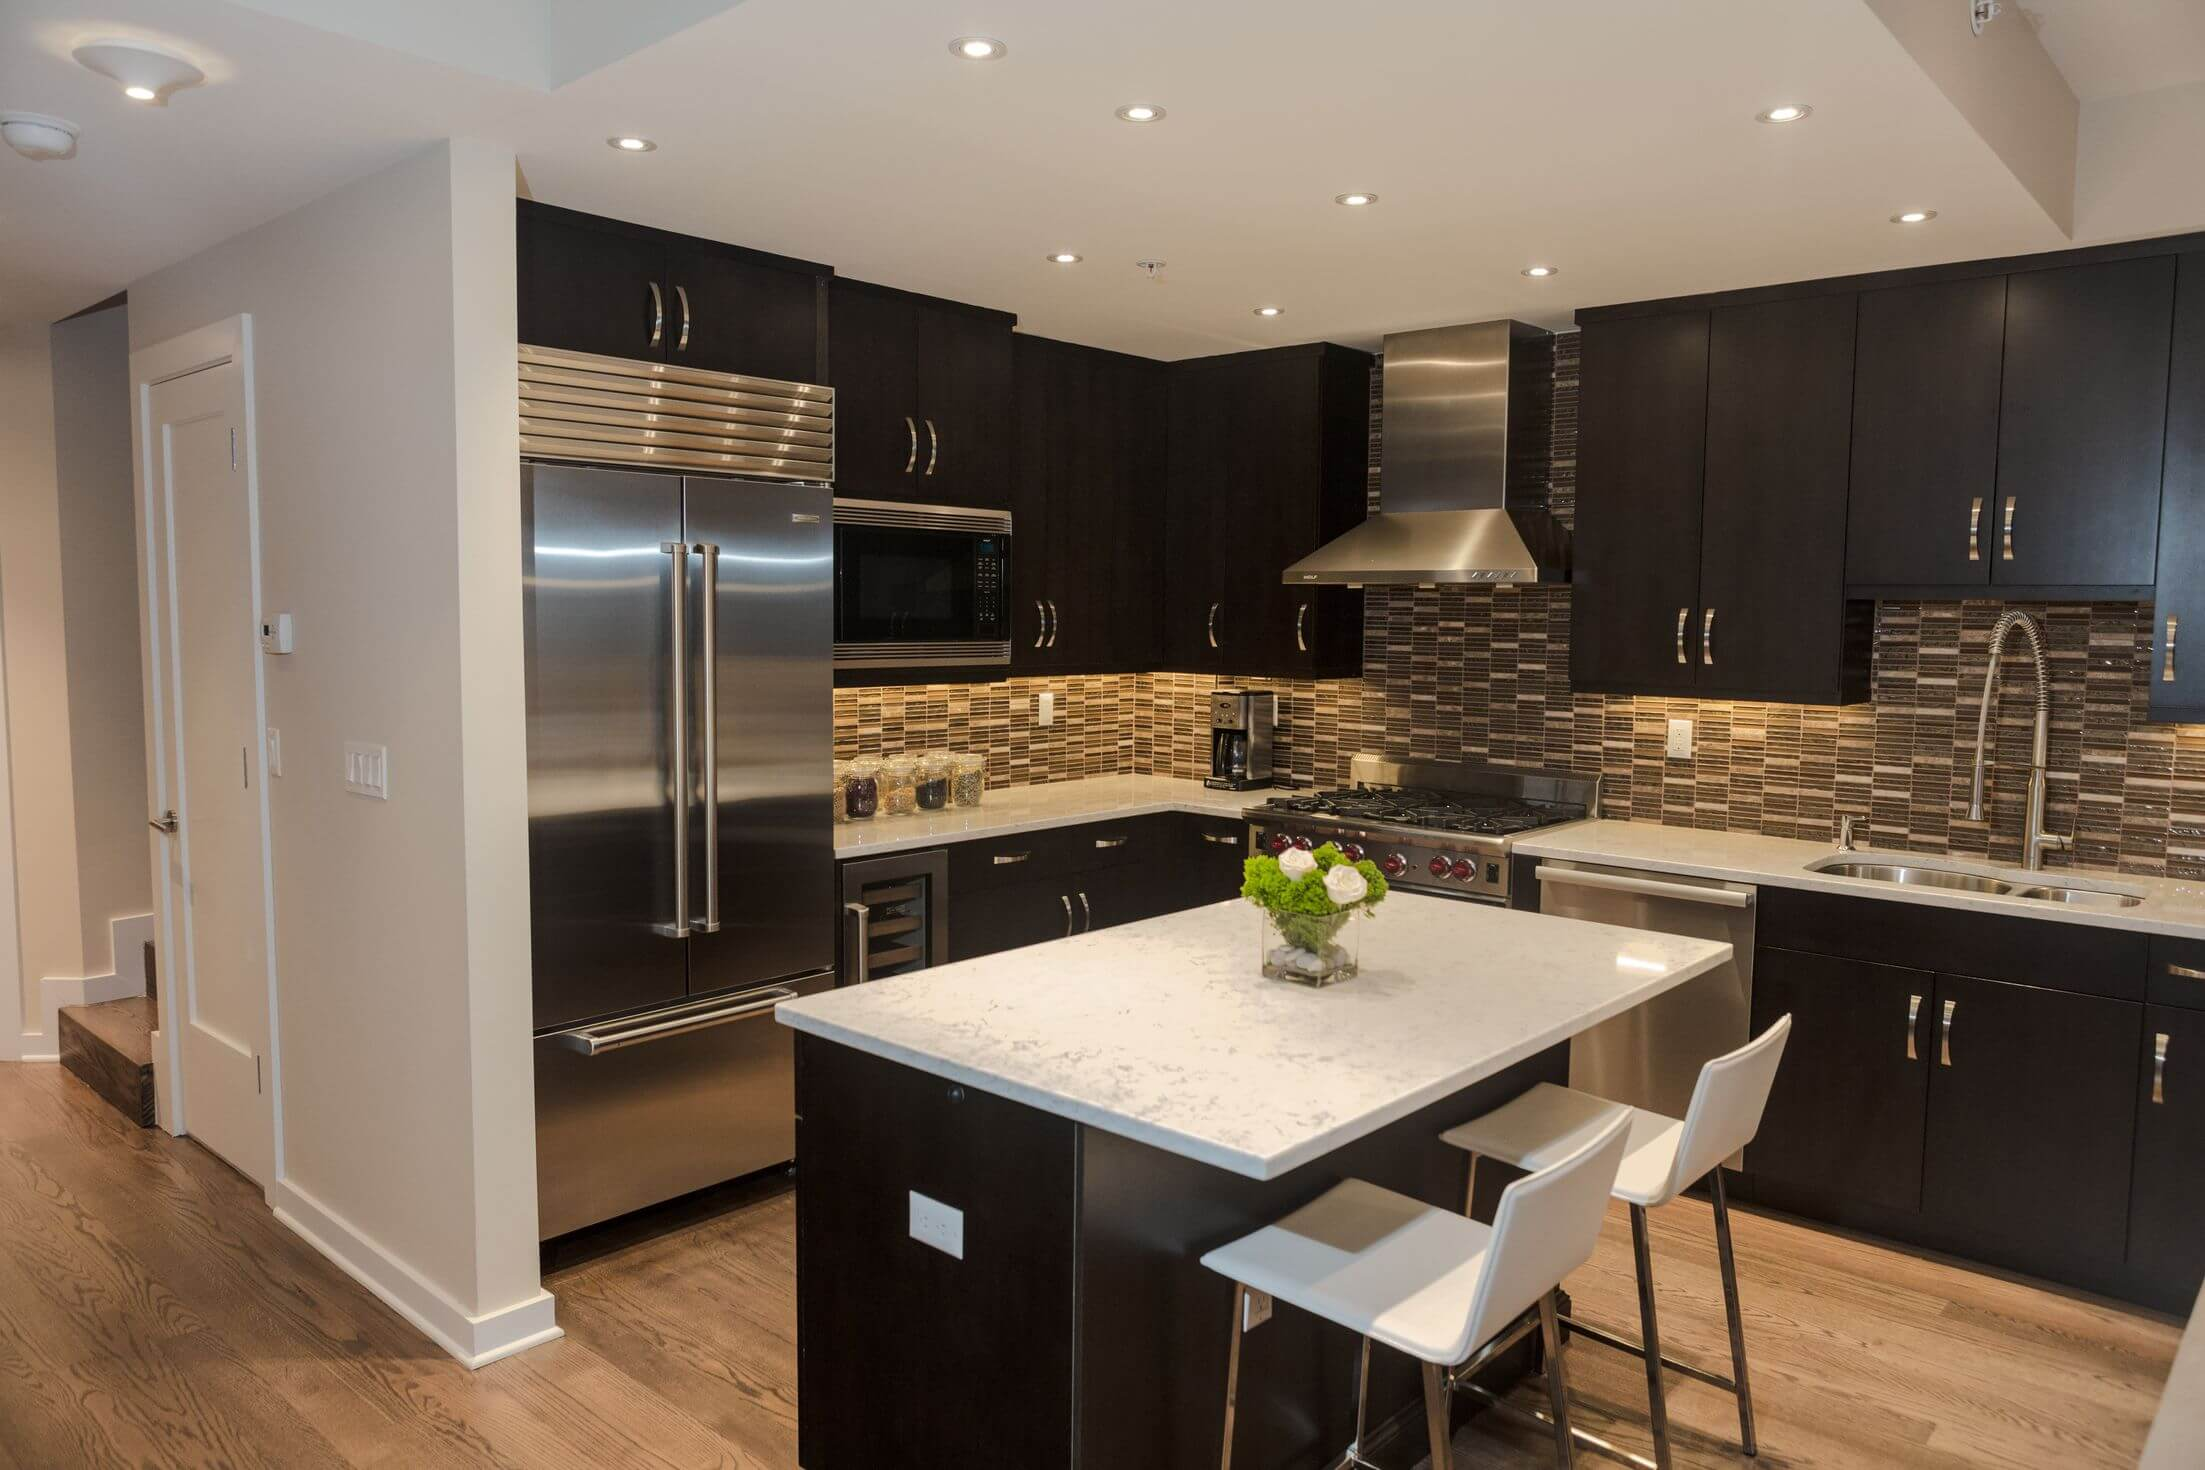 Black wood cabinetry and island contrast with patterned tile backsplash white marble countertops and